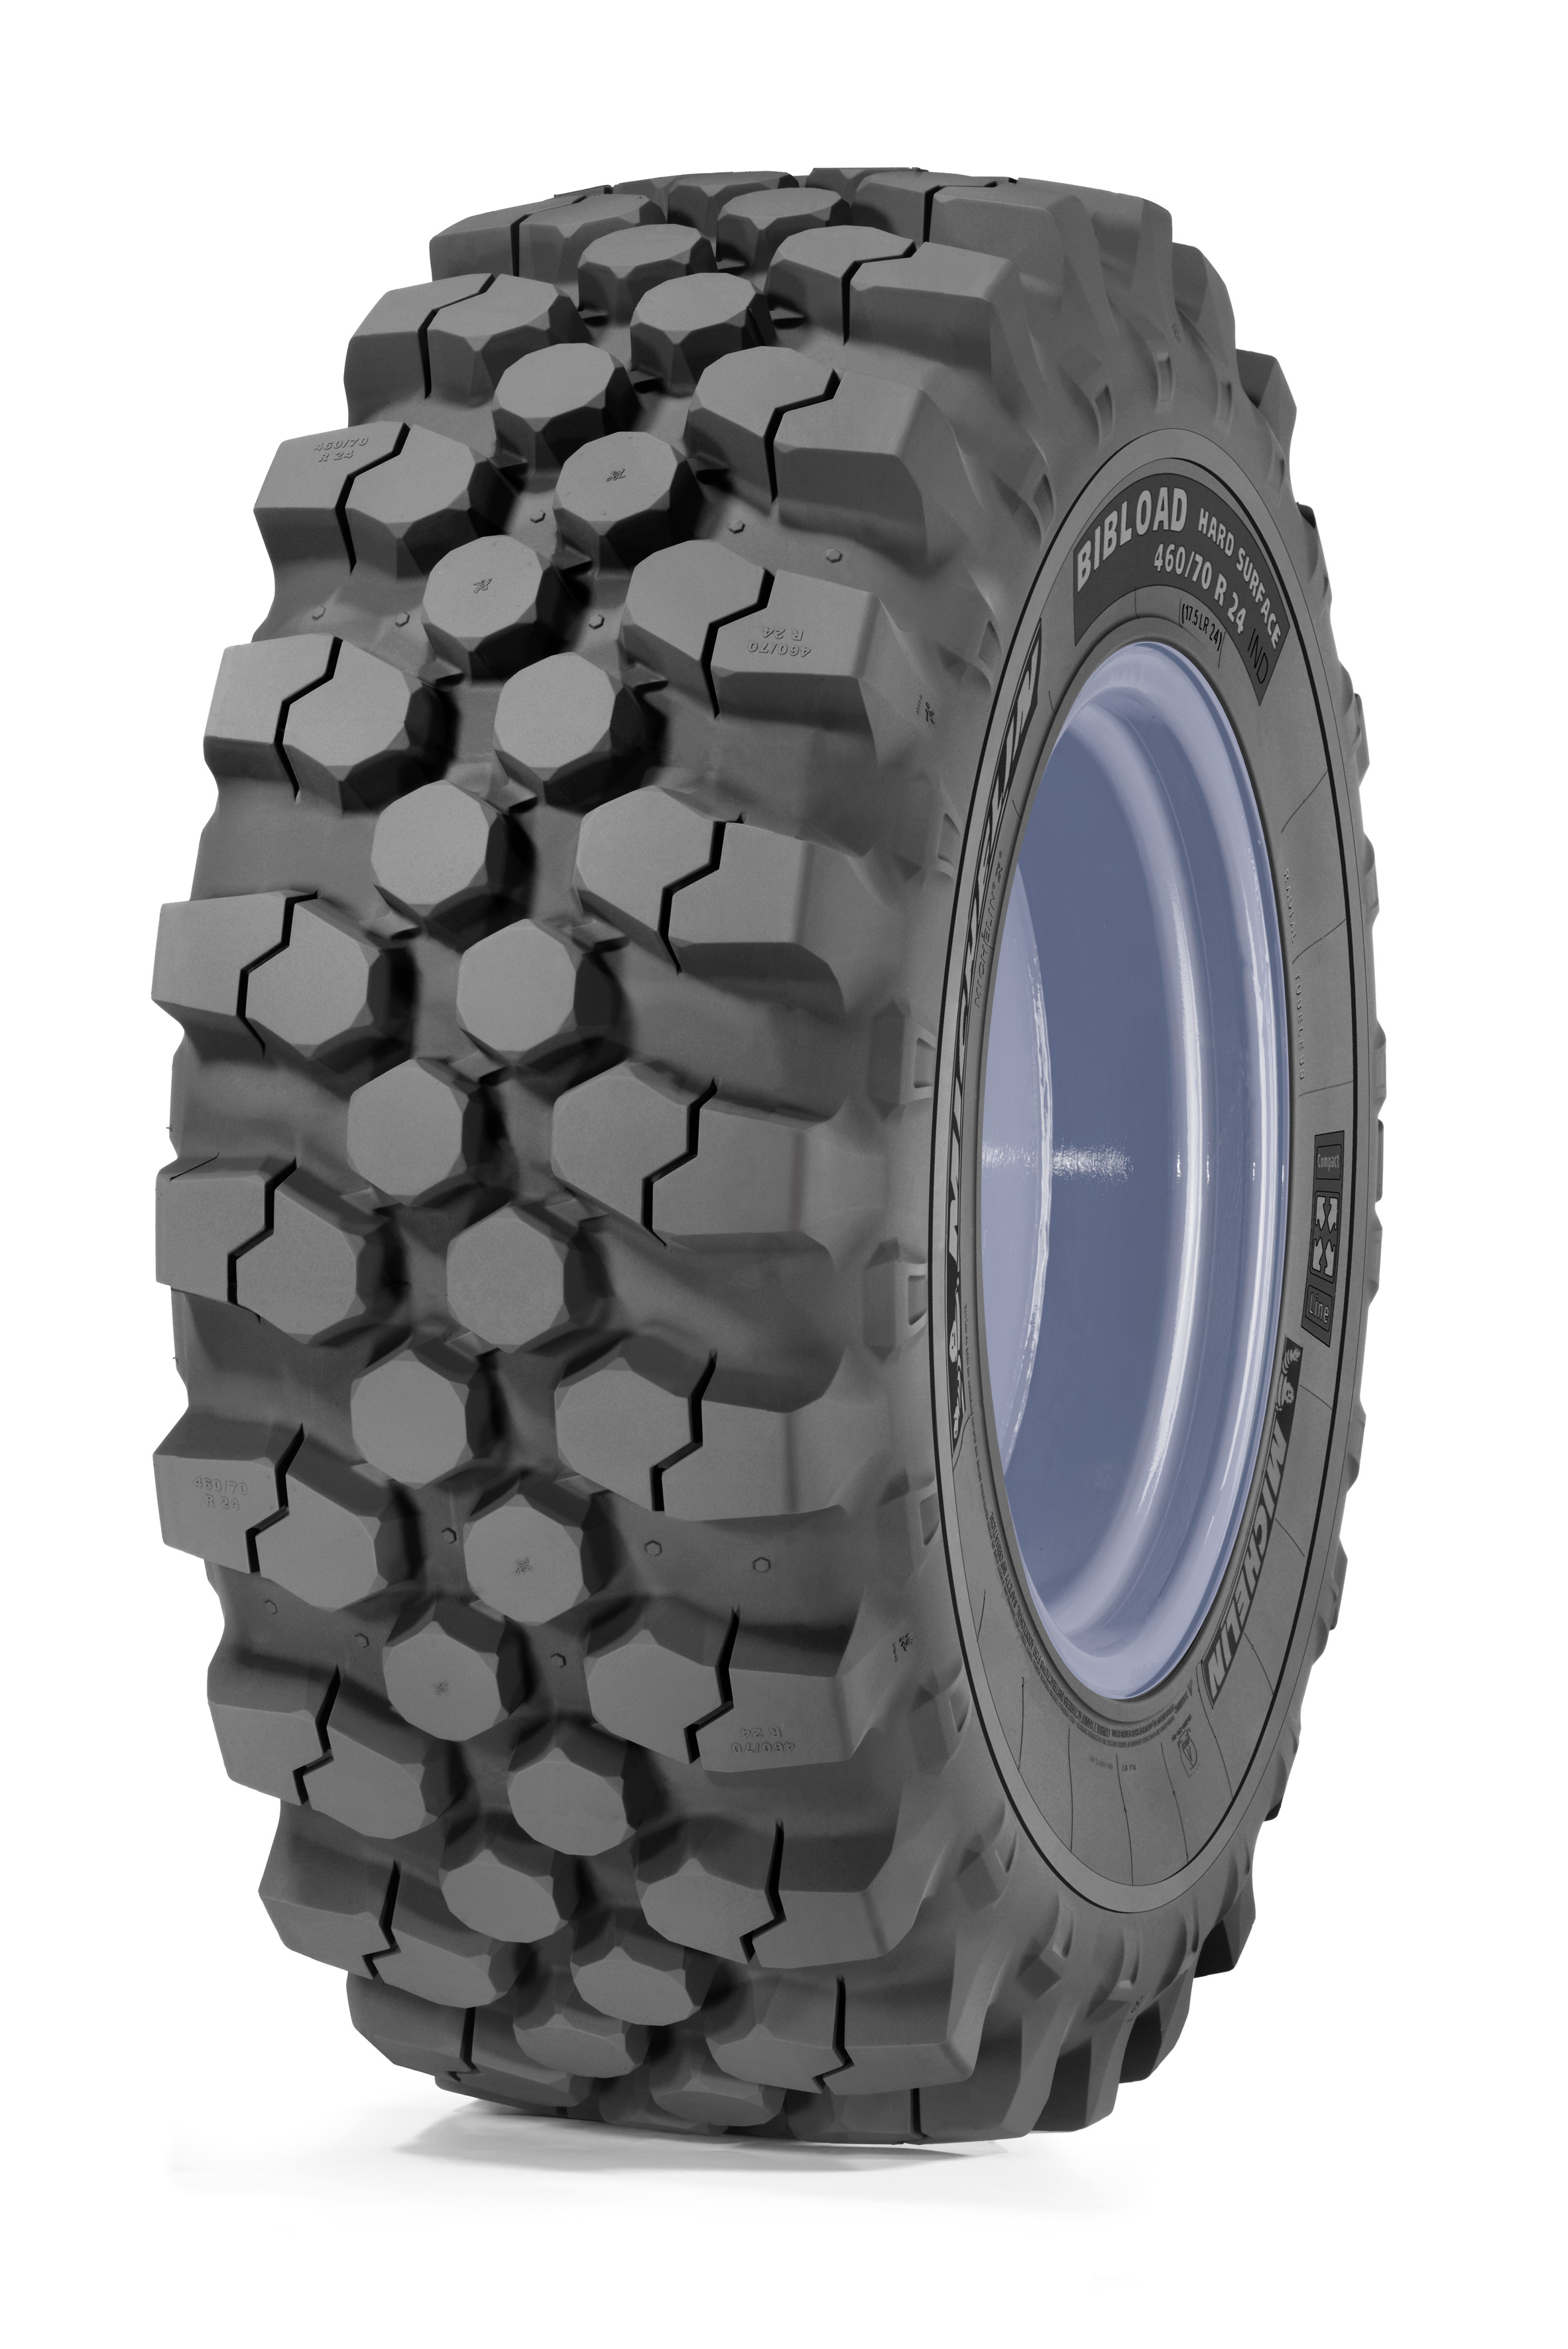 Гуми MICHELIN 400/70R20 149A8/149B IND TL BIBLOAD HARD SURFACE